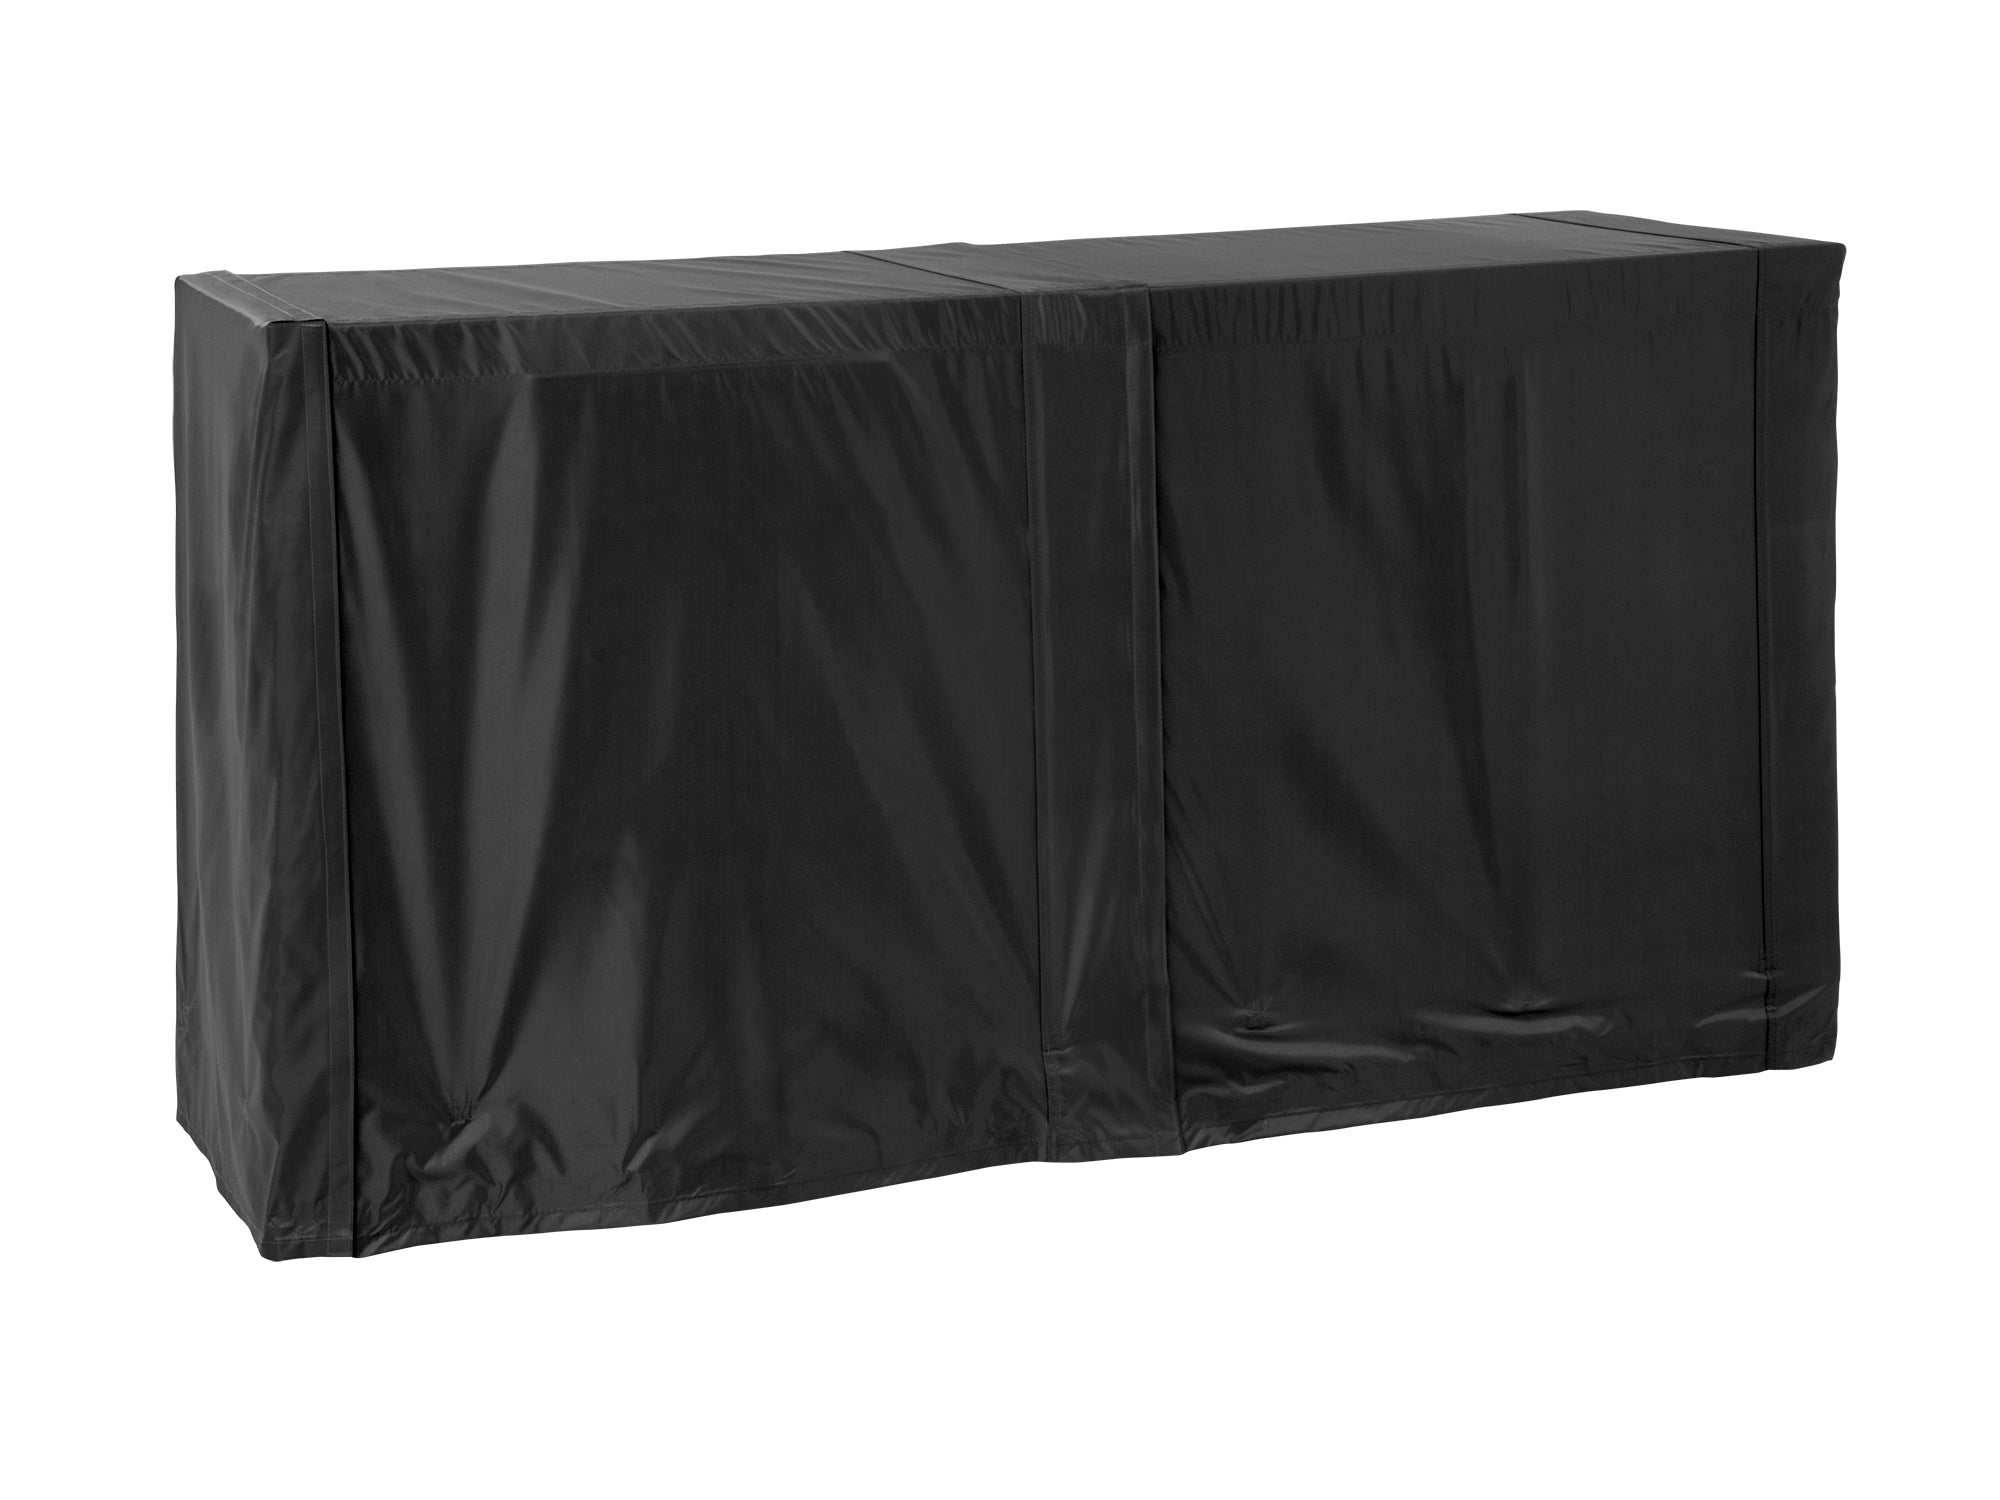 Outdoor Kitchen All-Season Cover Bundle: 40 in. Insert Grill Cabinet Cover, 64 in. Cover, Right/Left Side Panel Covers